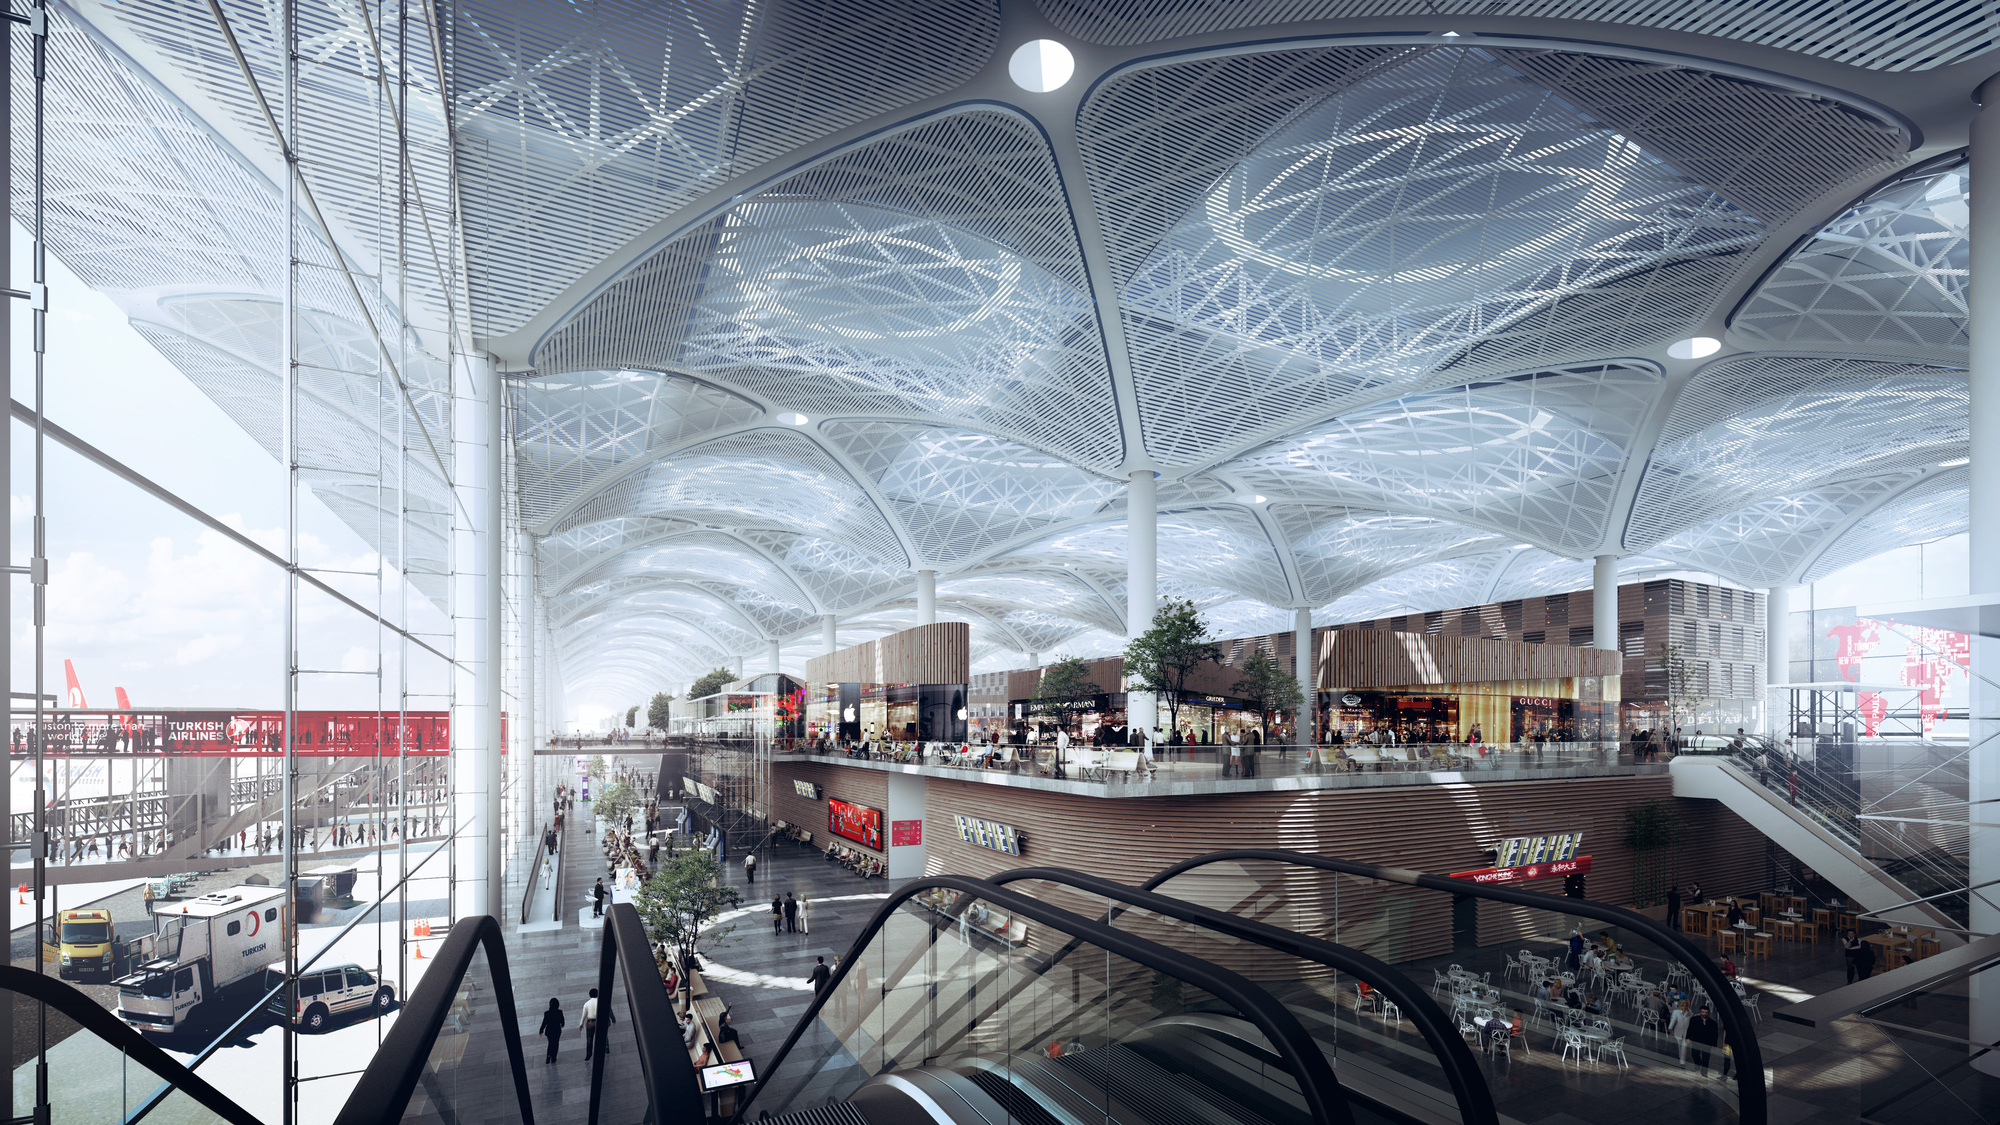 http://ad009cdnb.archdaily.net/wp-content/uploads/2014/11/546a6fe3e58ecea75a00002a_grimshaw-releases-new-images-of-world-s-largest-airport-terminal-in-istanbul_istanbul_new_airport__airside_01.jpg